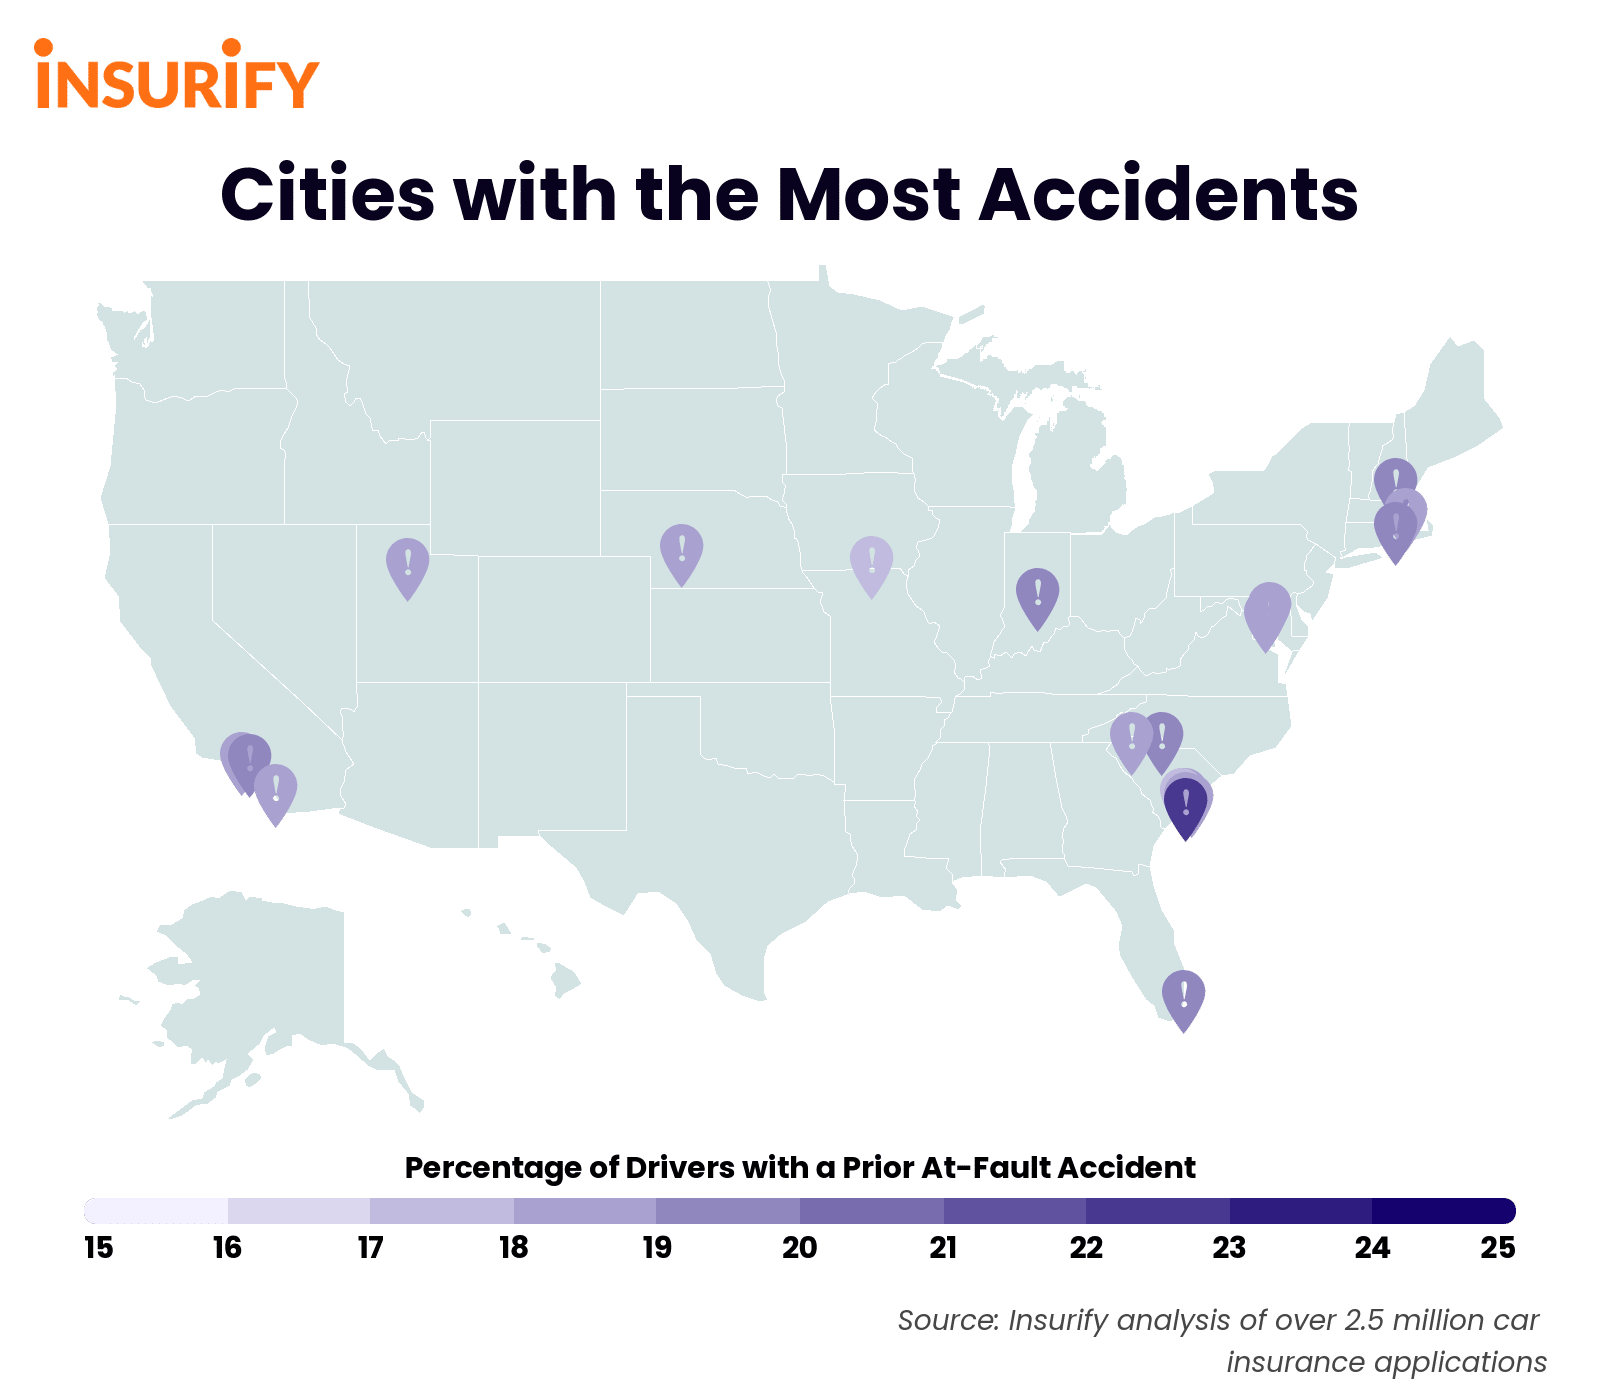 heat map of the United States showing Cities with the Most Accidents